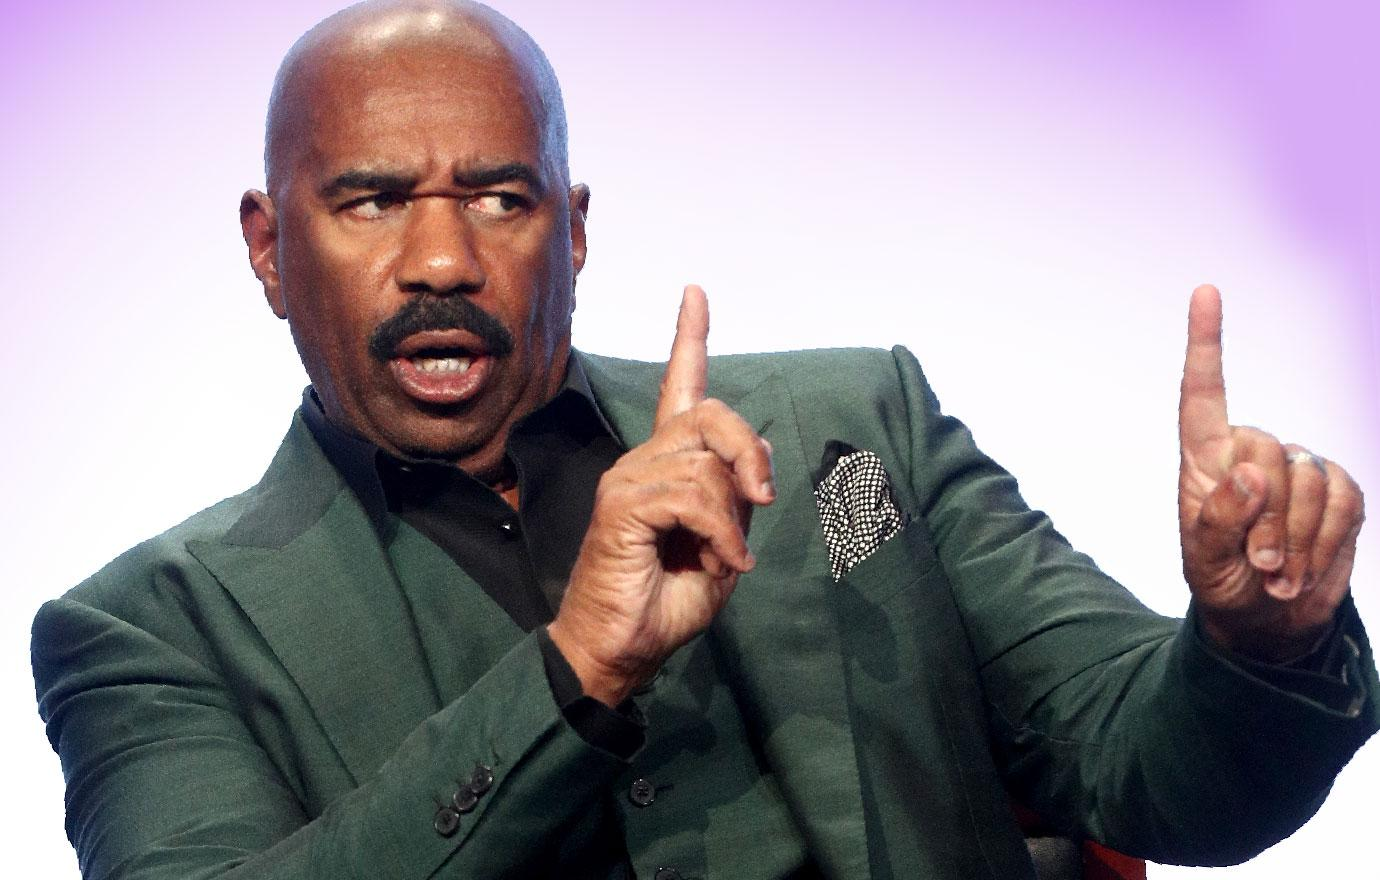 Steve Harvey Defends Memo Moves Show To Los Angeles